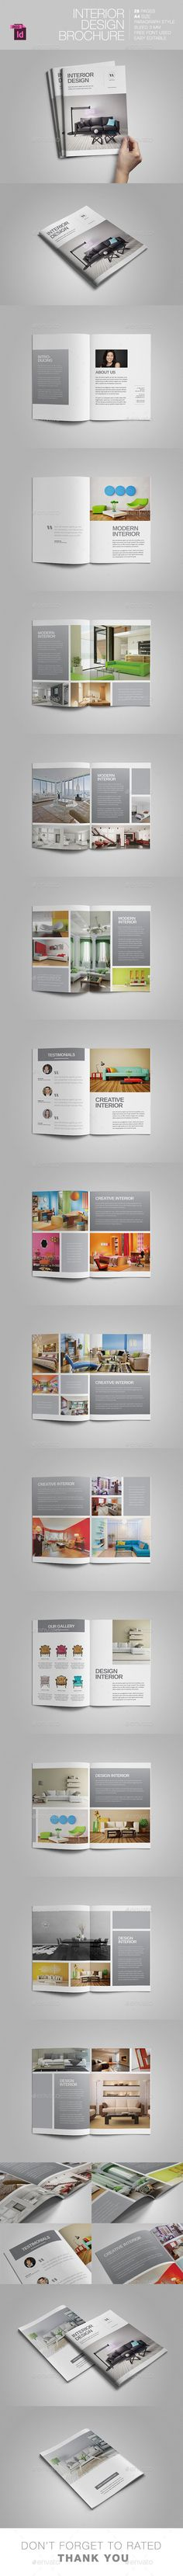 Interior Design Brochure Design Template. Download: http://graphicriver.net/item/interior-design-brochure/11403664?ref=ksioks